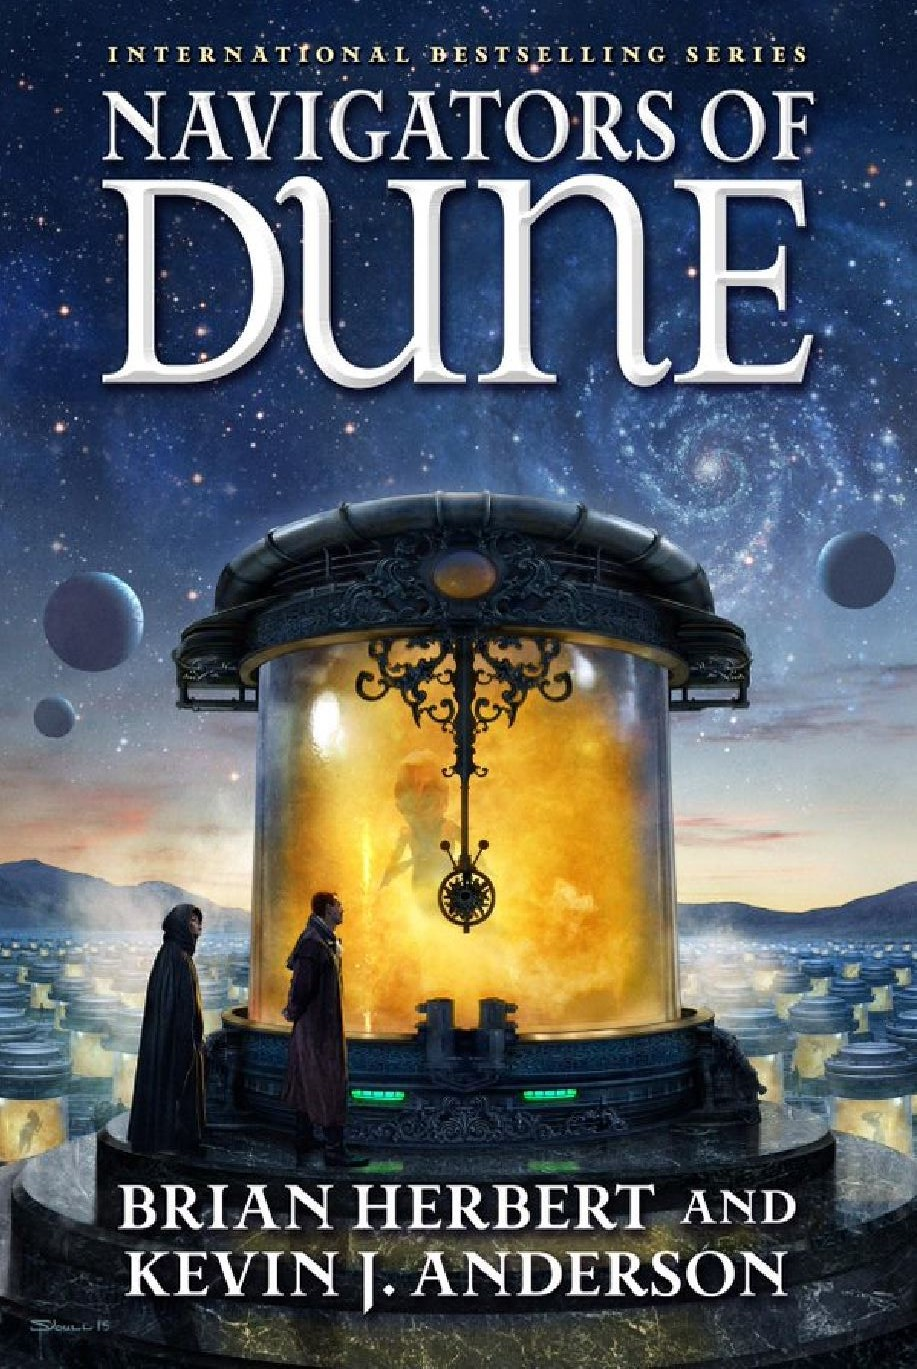 Navigators of Dune by Brian Herbert and Kevin J. Anderson